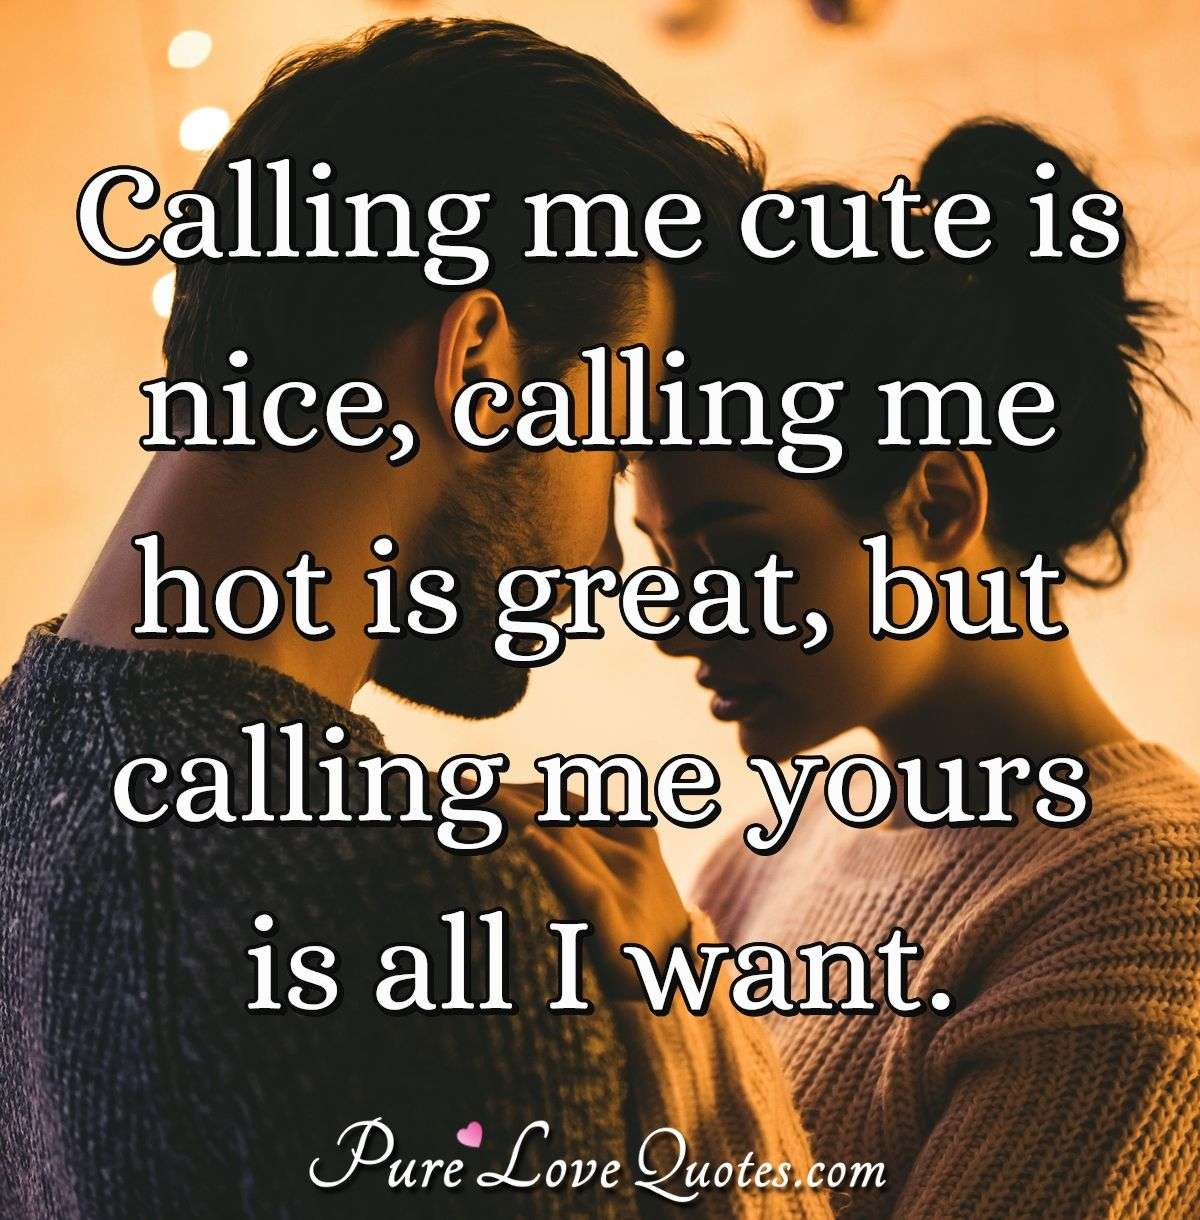 Calling me cute is nice, calling me hot is great, but calling me yours is all I want. - Anonymous